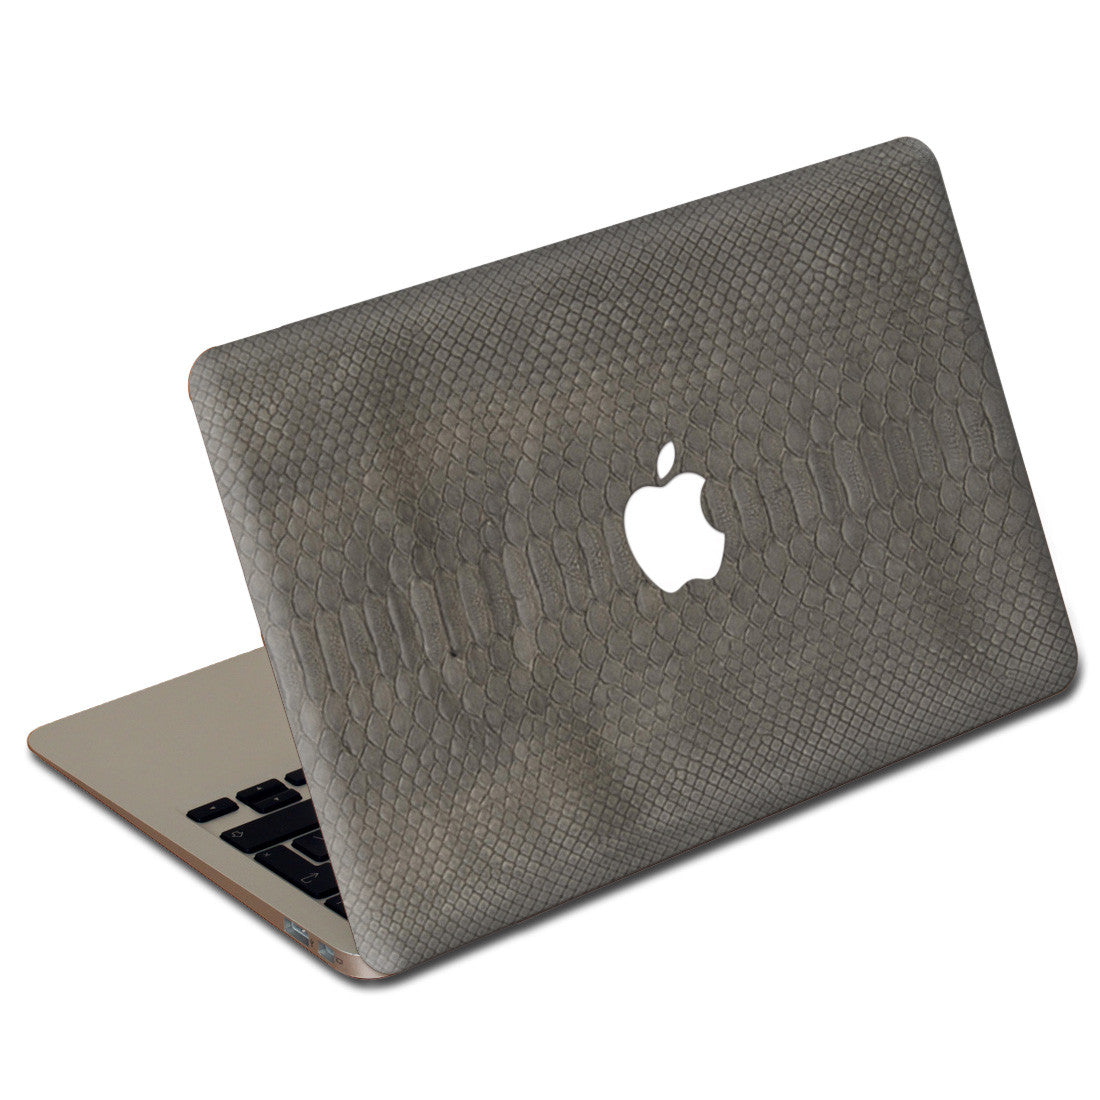 Gray Python MacBook Leather Cover